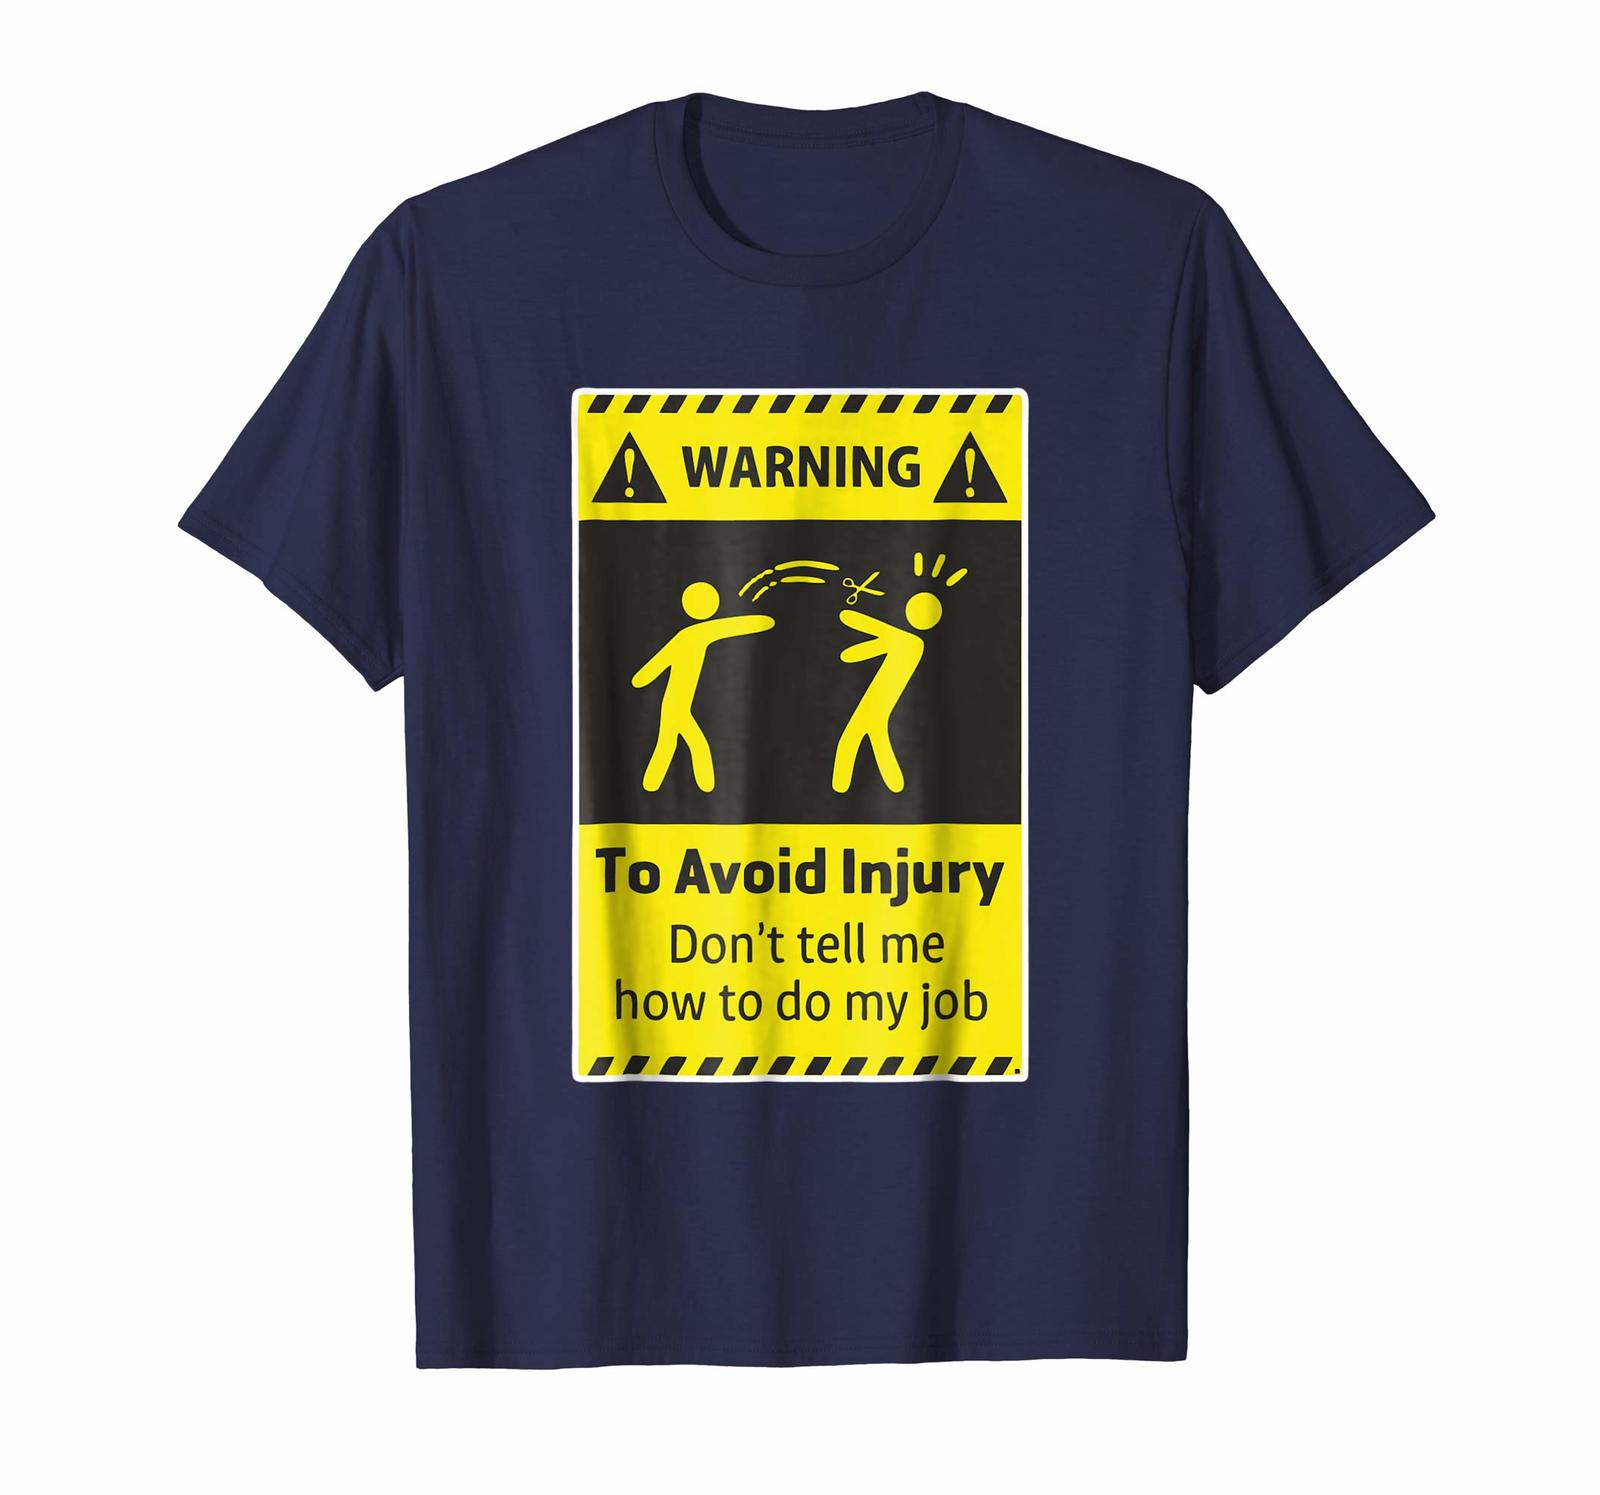 Primary image for Brother Shirts - To Avoid Injury Don't Tell Me How To Do My Job T-Shirt Men